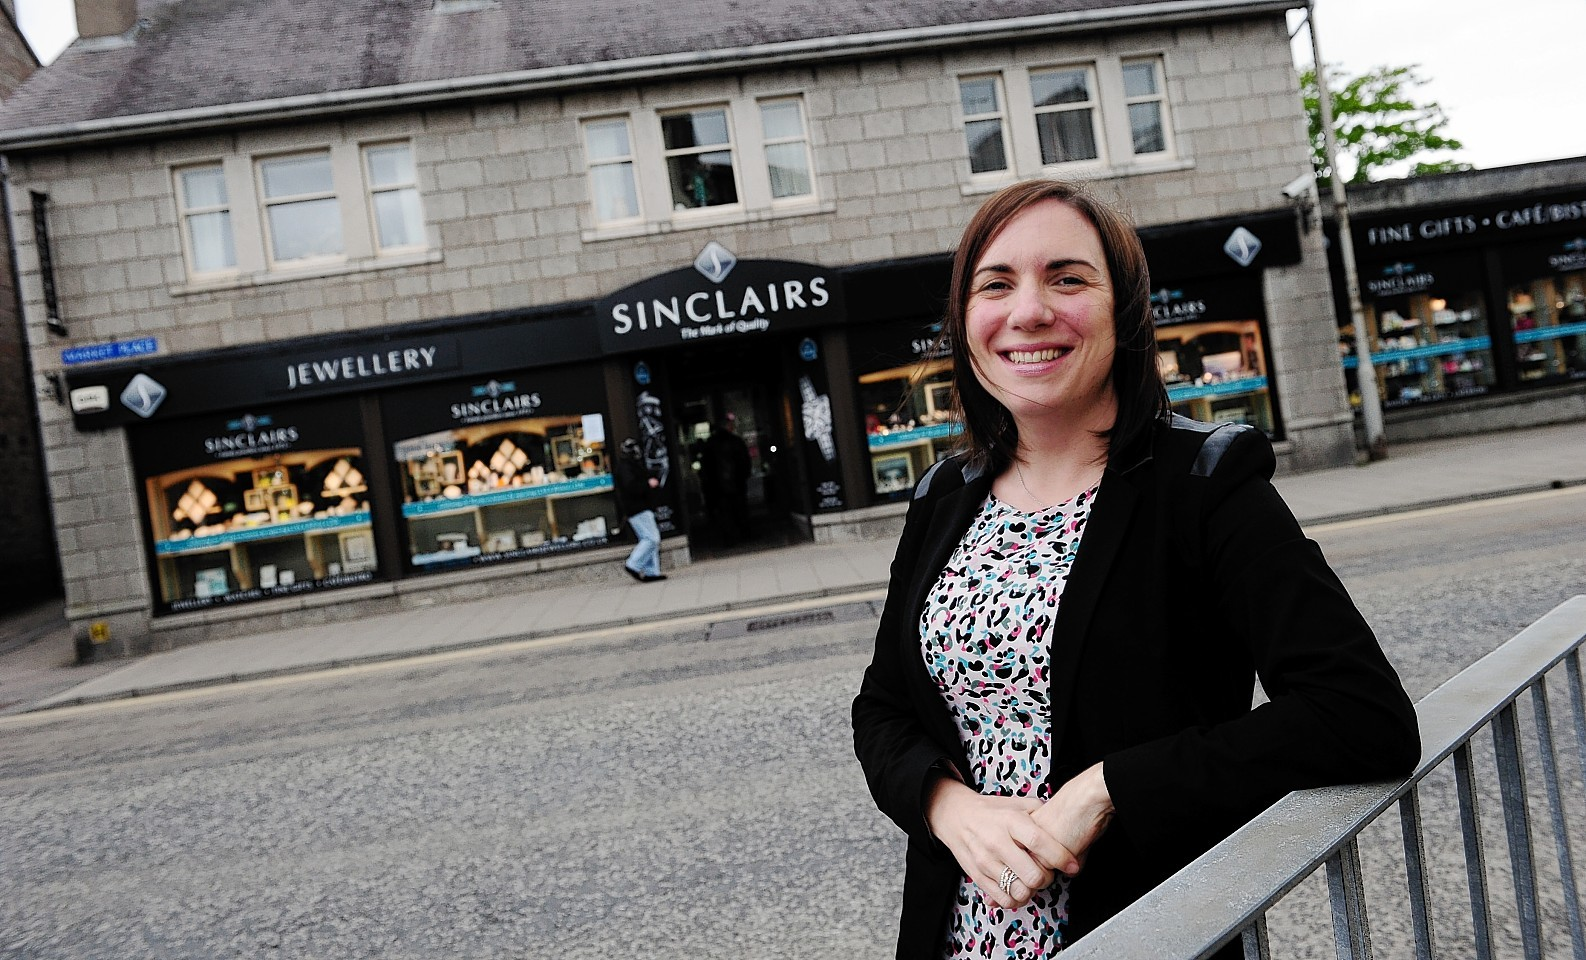 Debbie Sinclair of Sinclairs the Jewellers, Inverurie. Picture by Kami Thomson